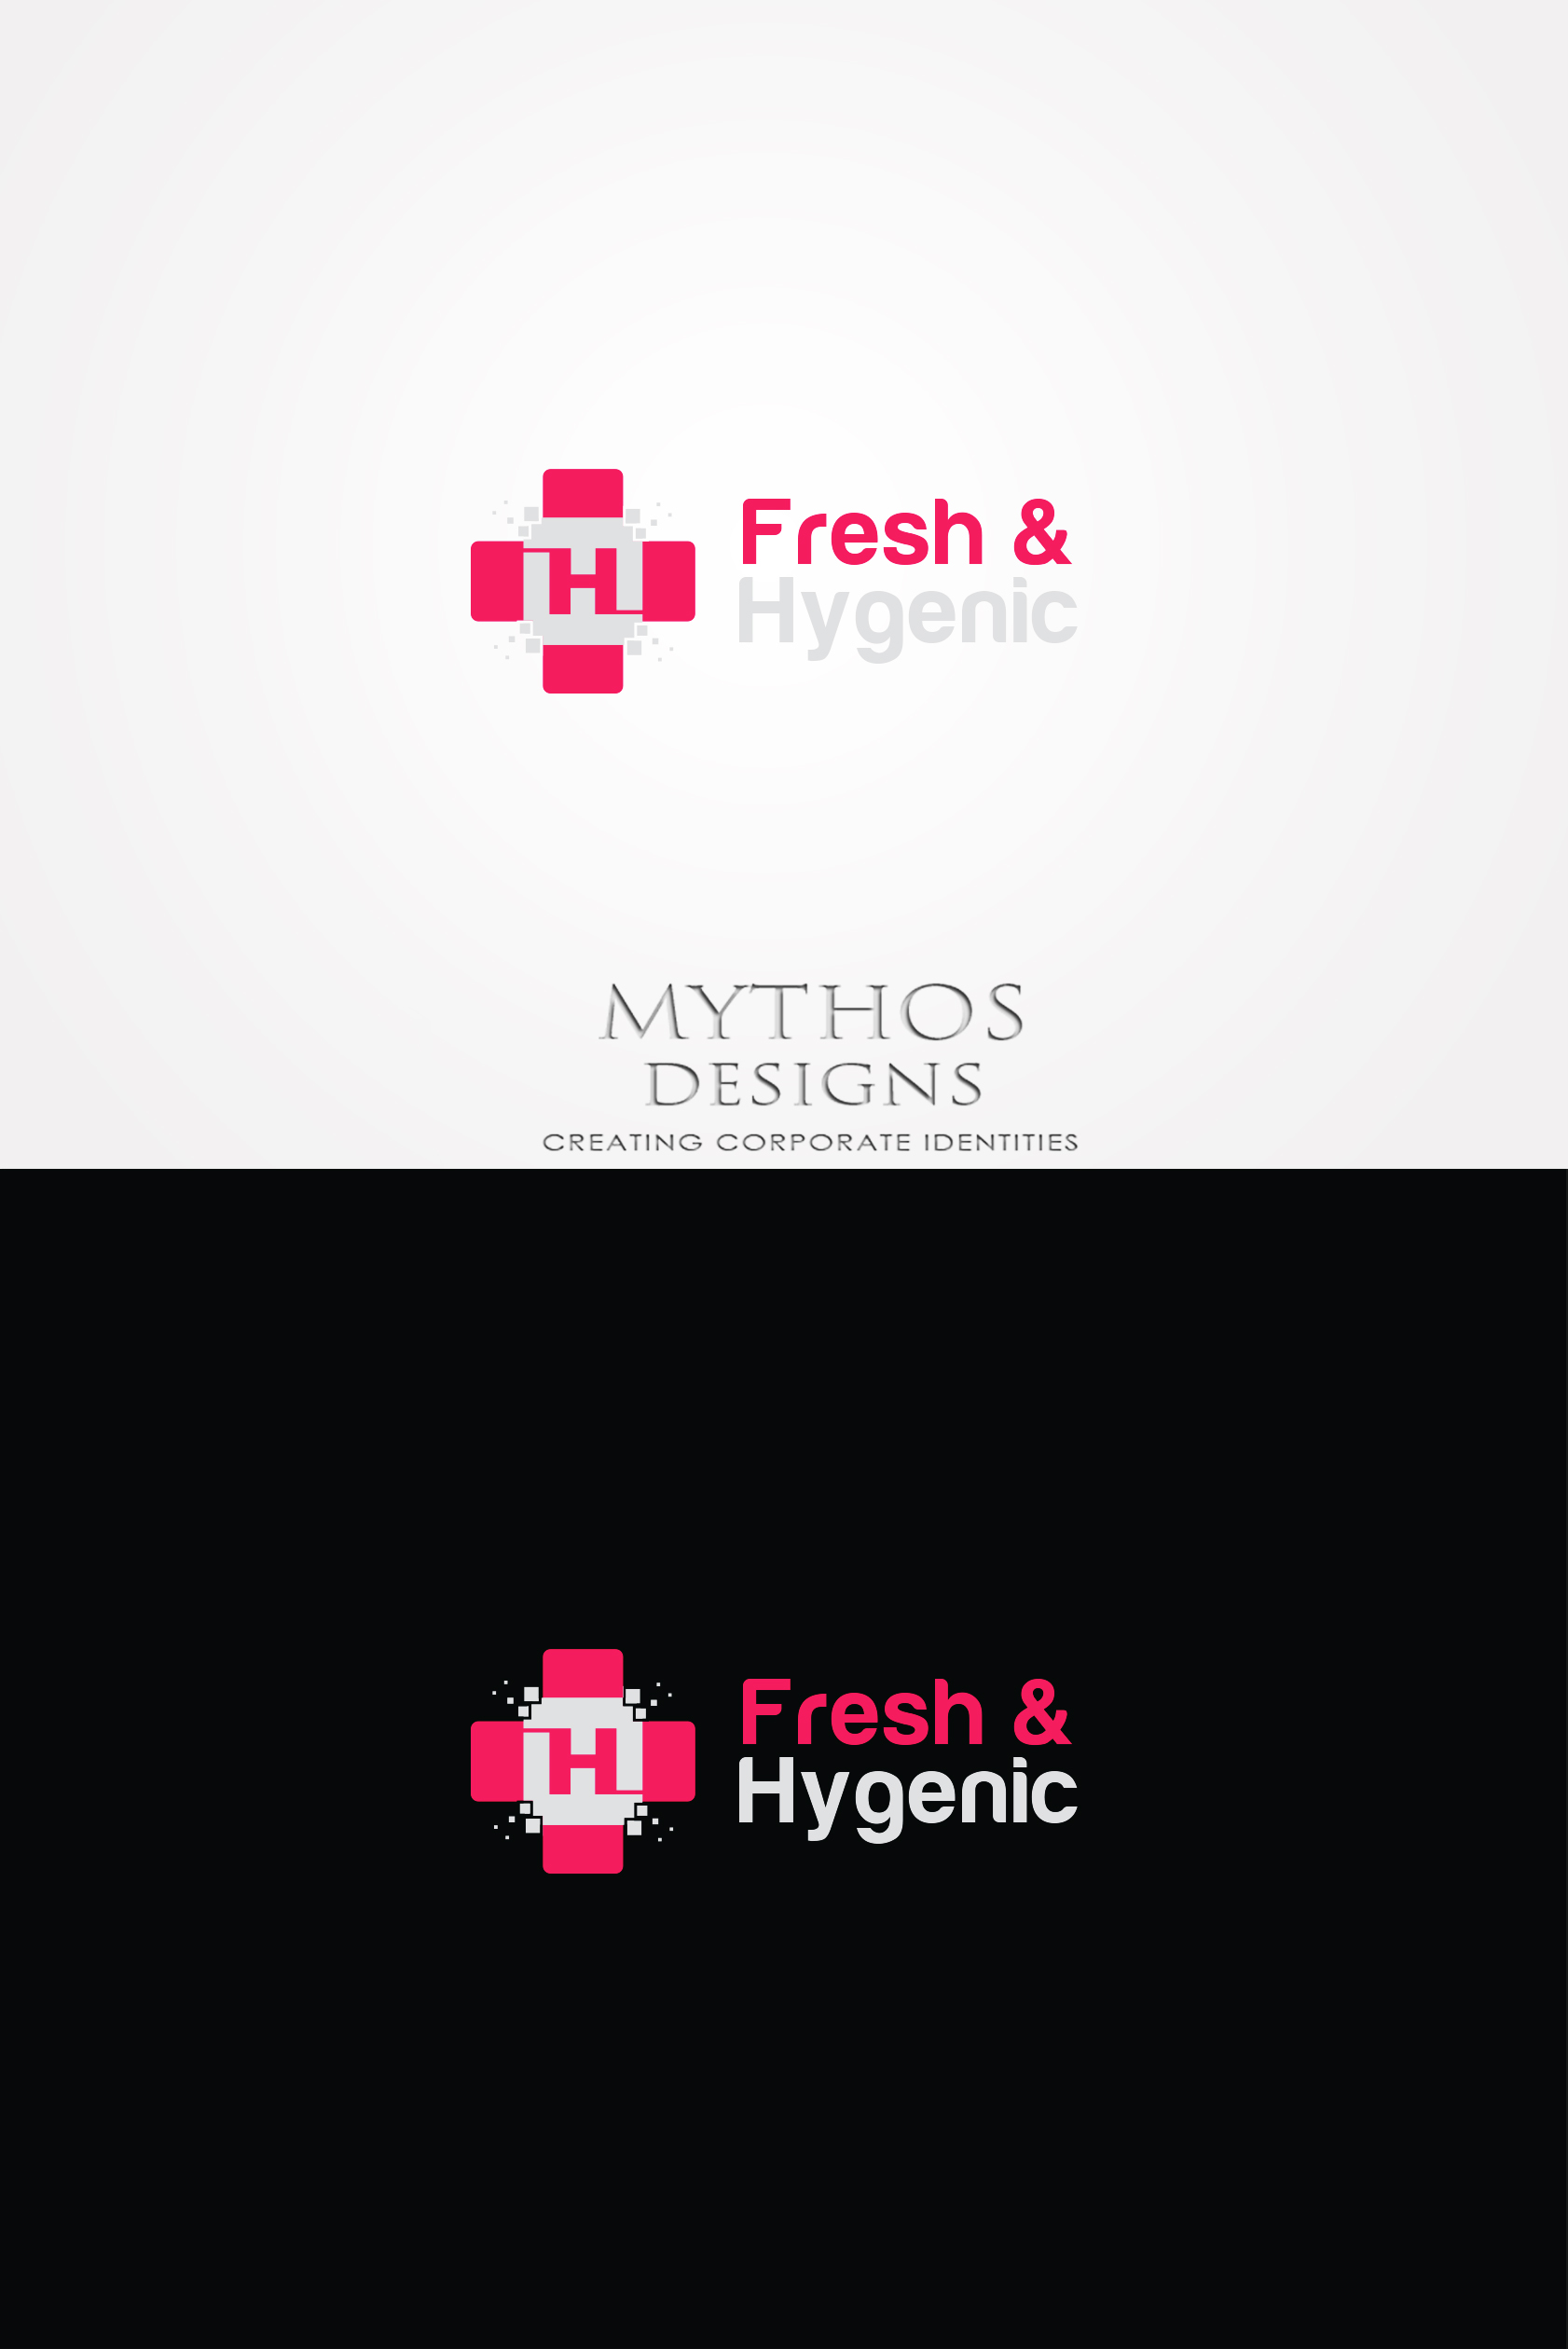 Logo Design by Mythos Designs - Entry No. 146 in the Logo Design Contest Fun Logo Design for Fresh & Hygenic.